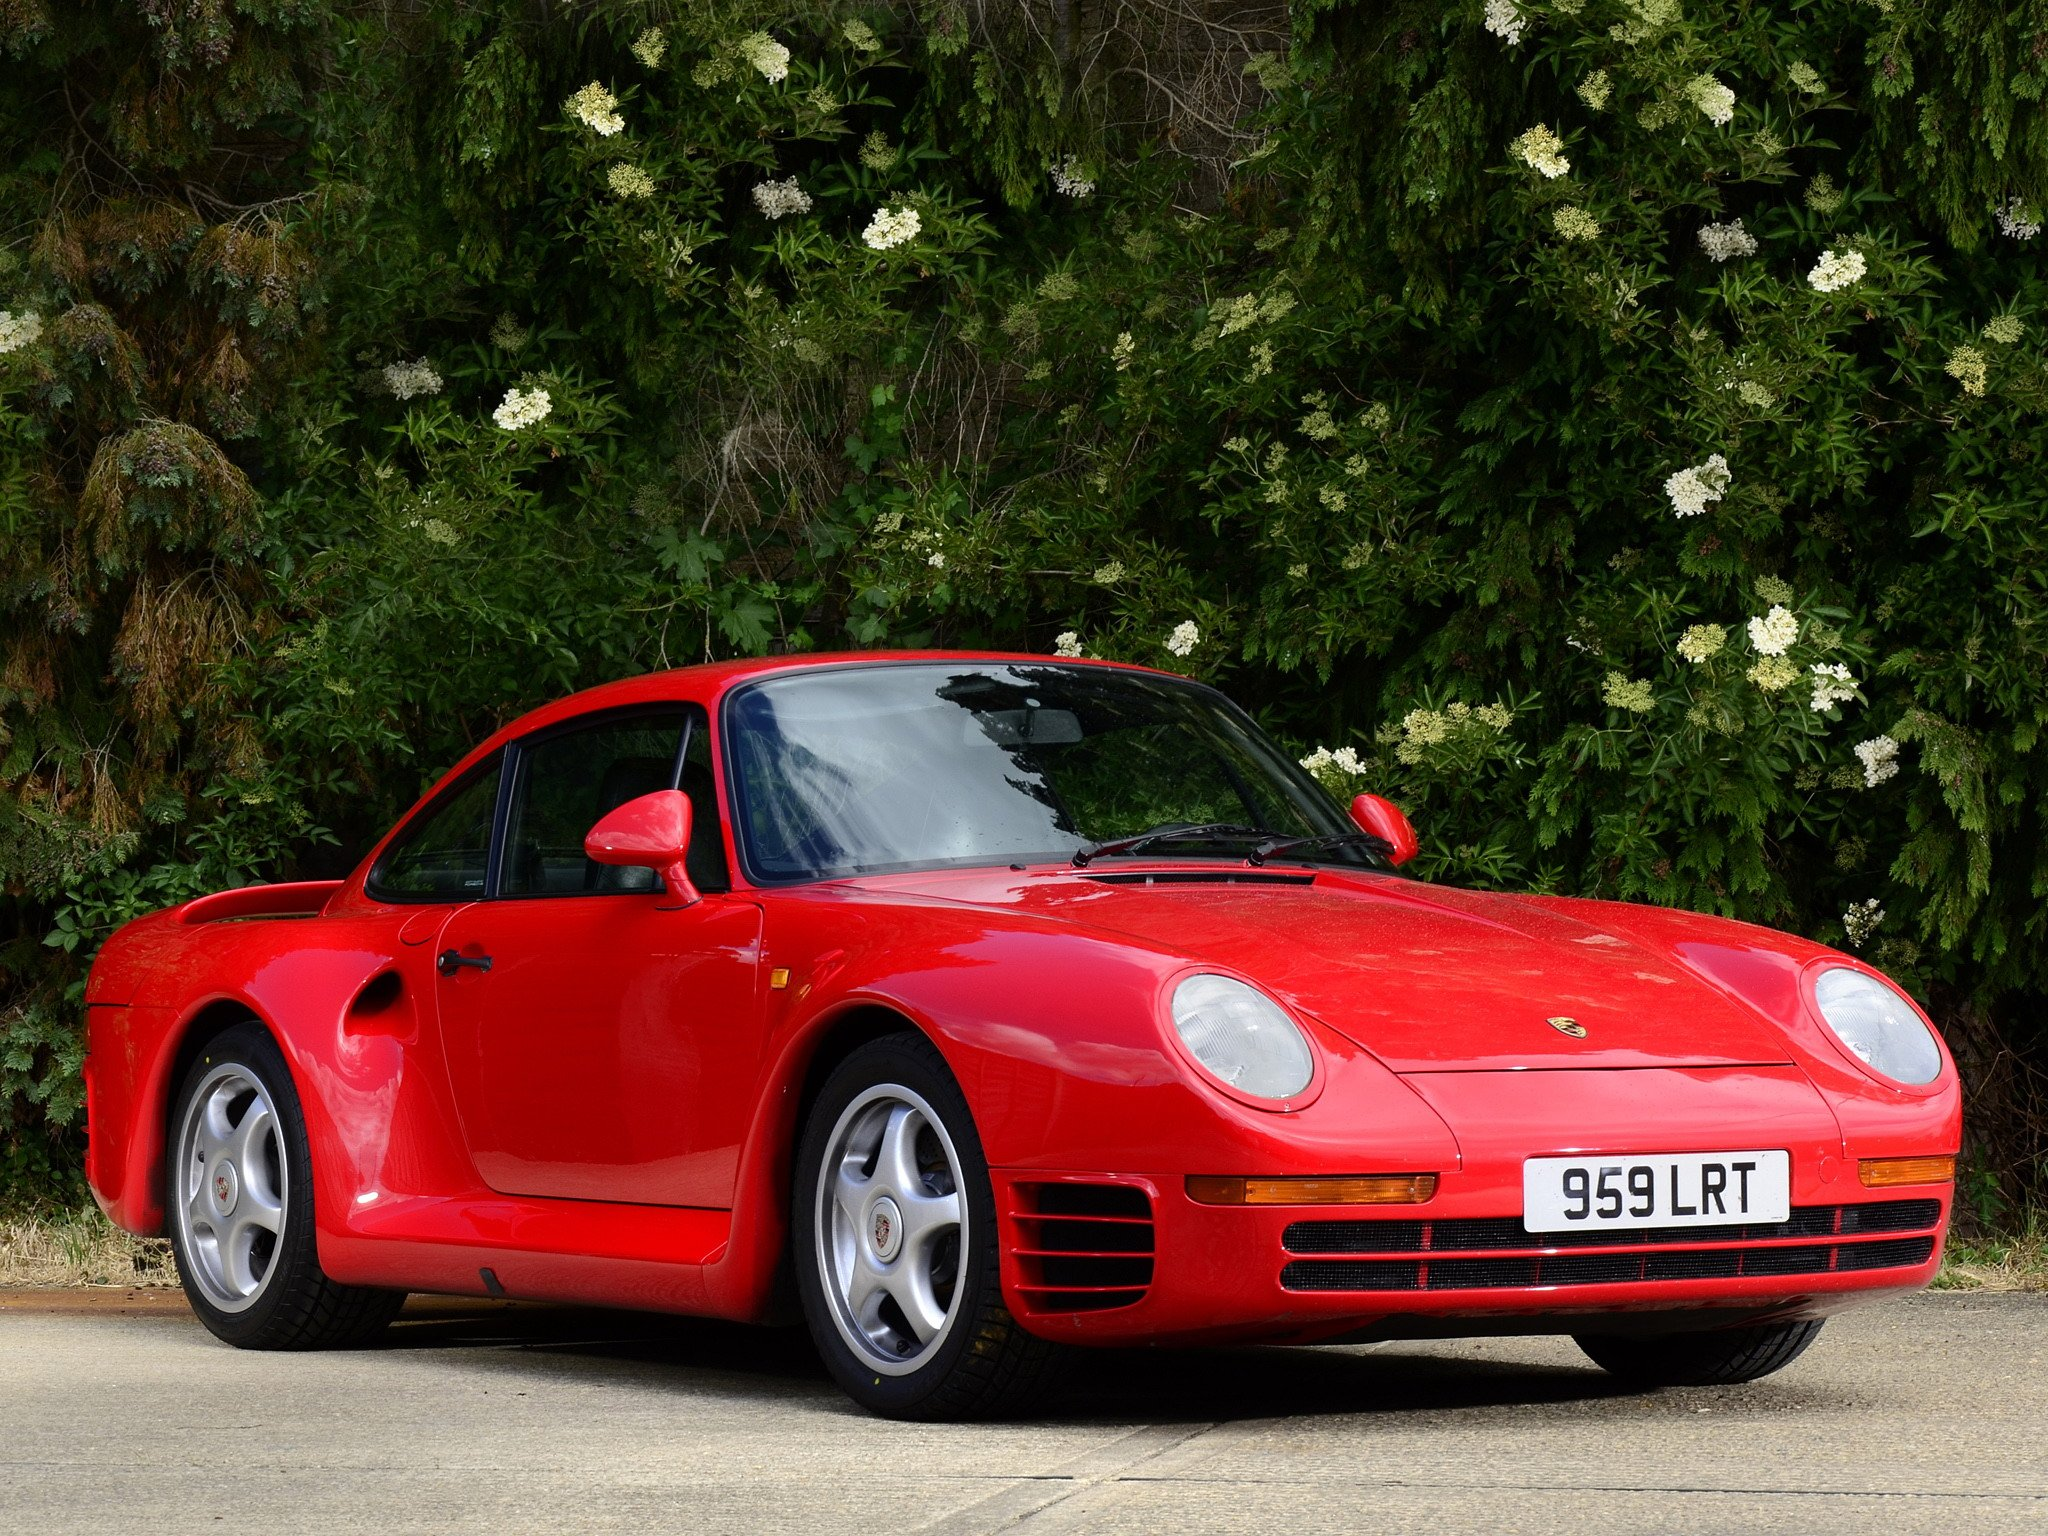 A picture of the Porsche 959 in the public. The beautiful car has a red body and is a two seater